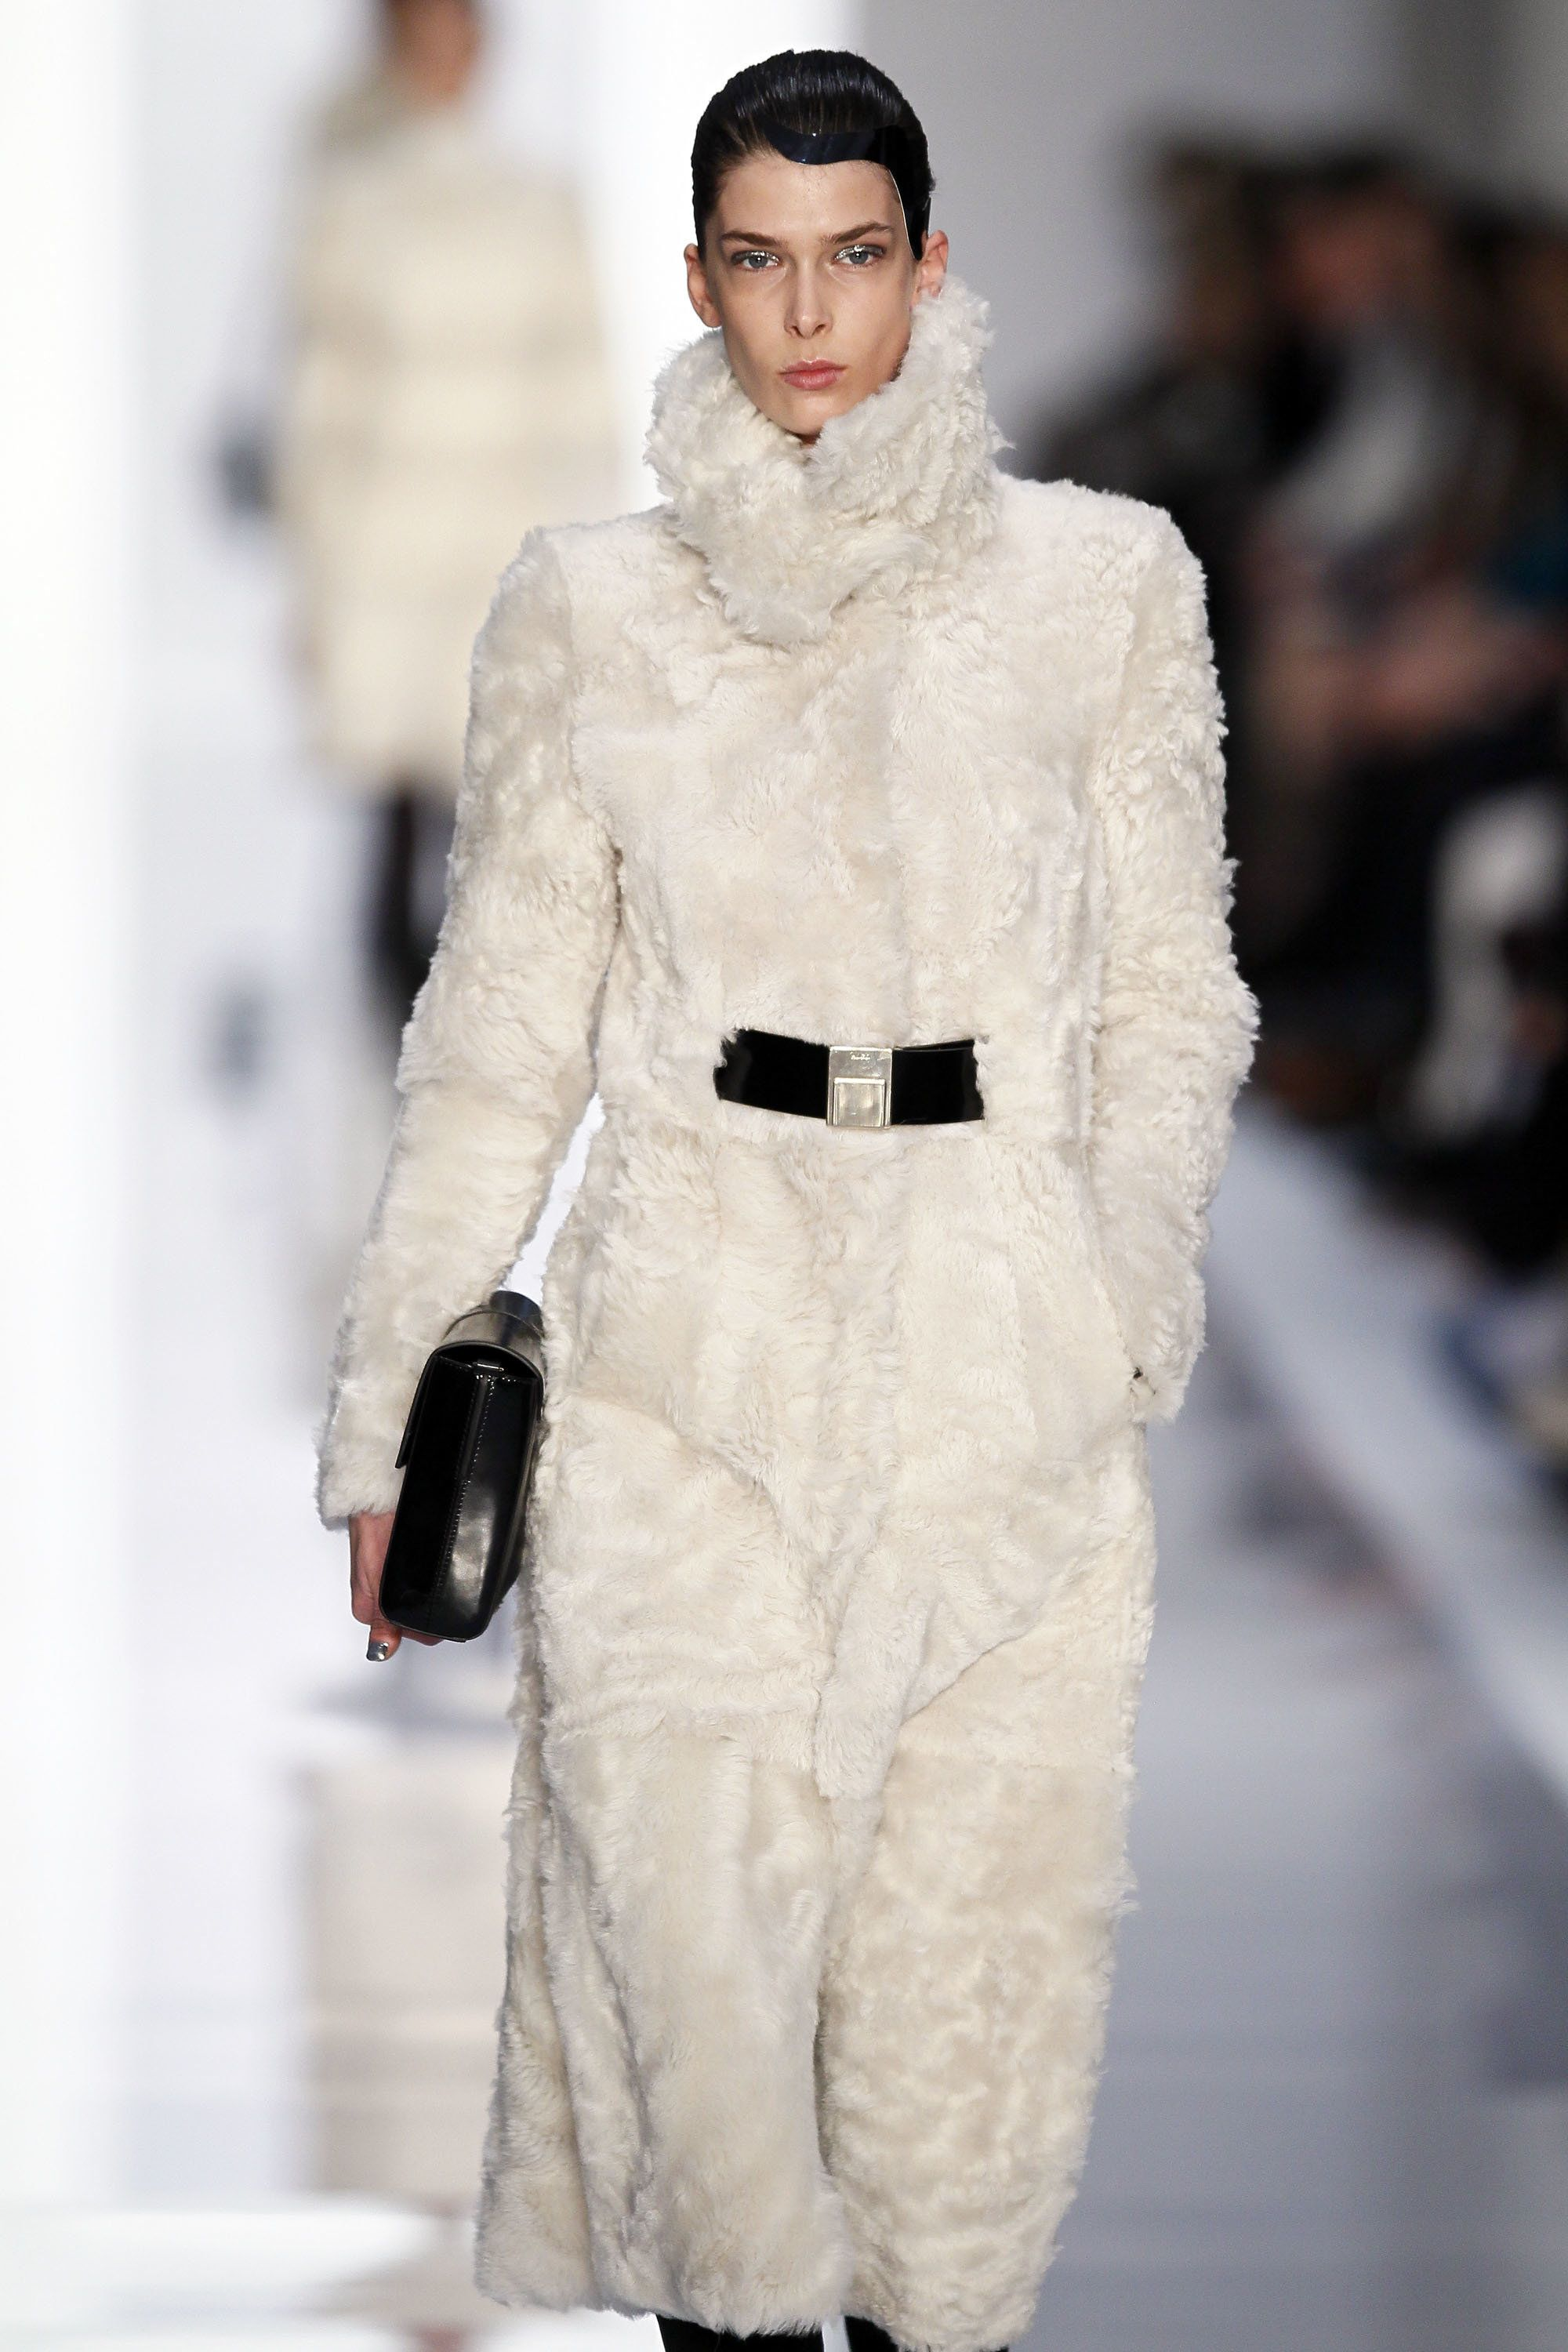 BERLIN, GERMANY - JANUARY 19:  A model walks the runway at the Hugo by Hugo Boss Autumn/Winter 2012 fashion show during Mercedes-Benz Fashion Week Berlin at Gemaldegalerie on January 19, 2012 in Berlin, Germany.  (Photo by Peter Michael Dills/Getty Images)